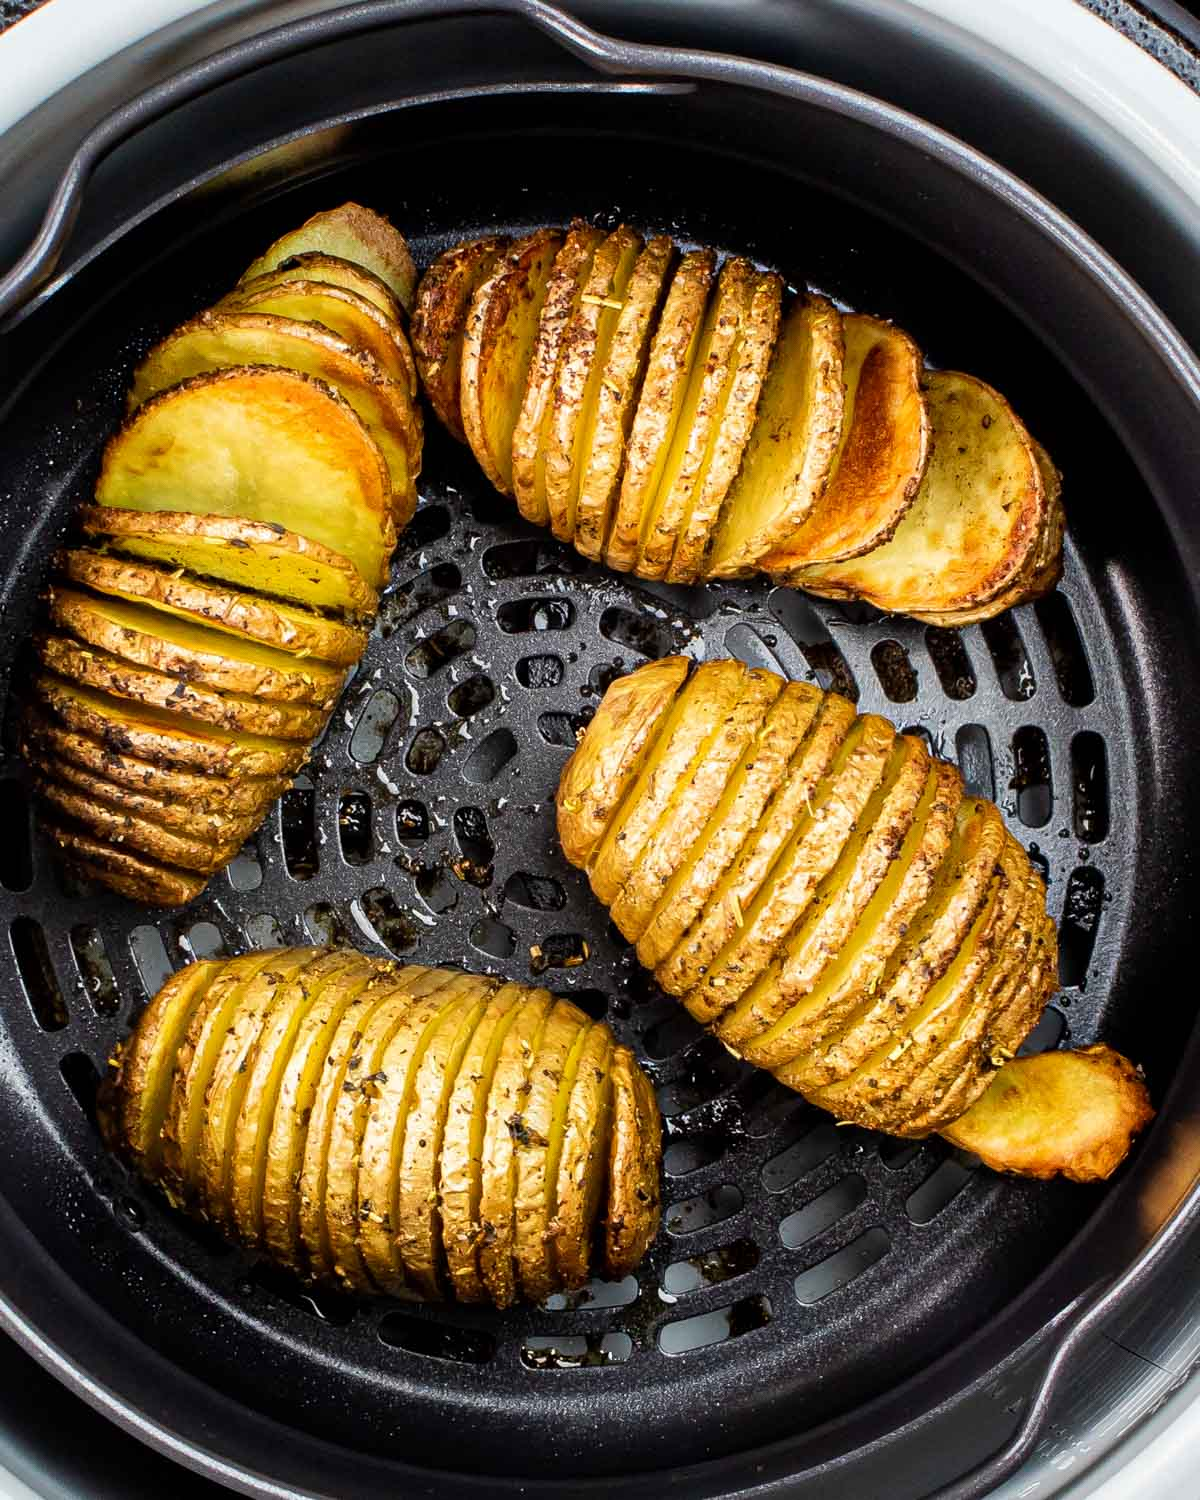 hasselback potatoes in an air fryer.